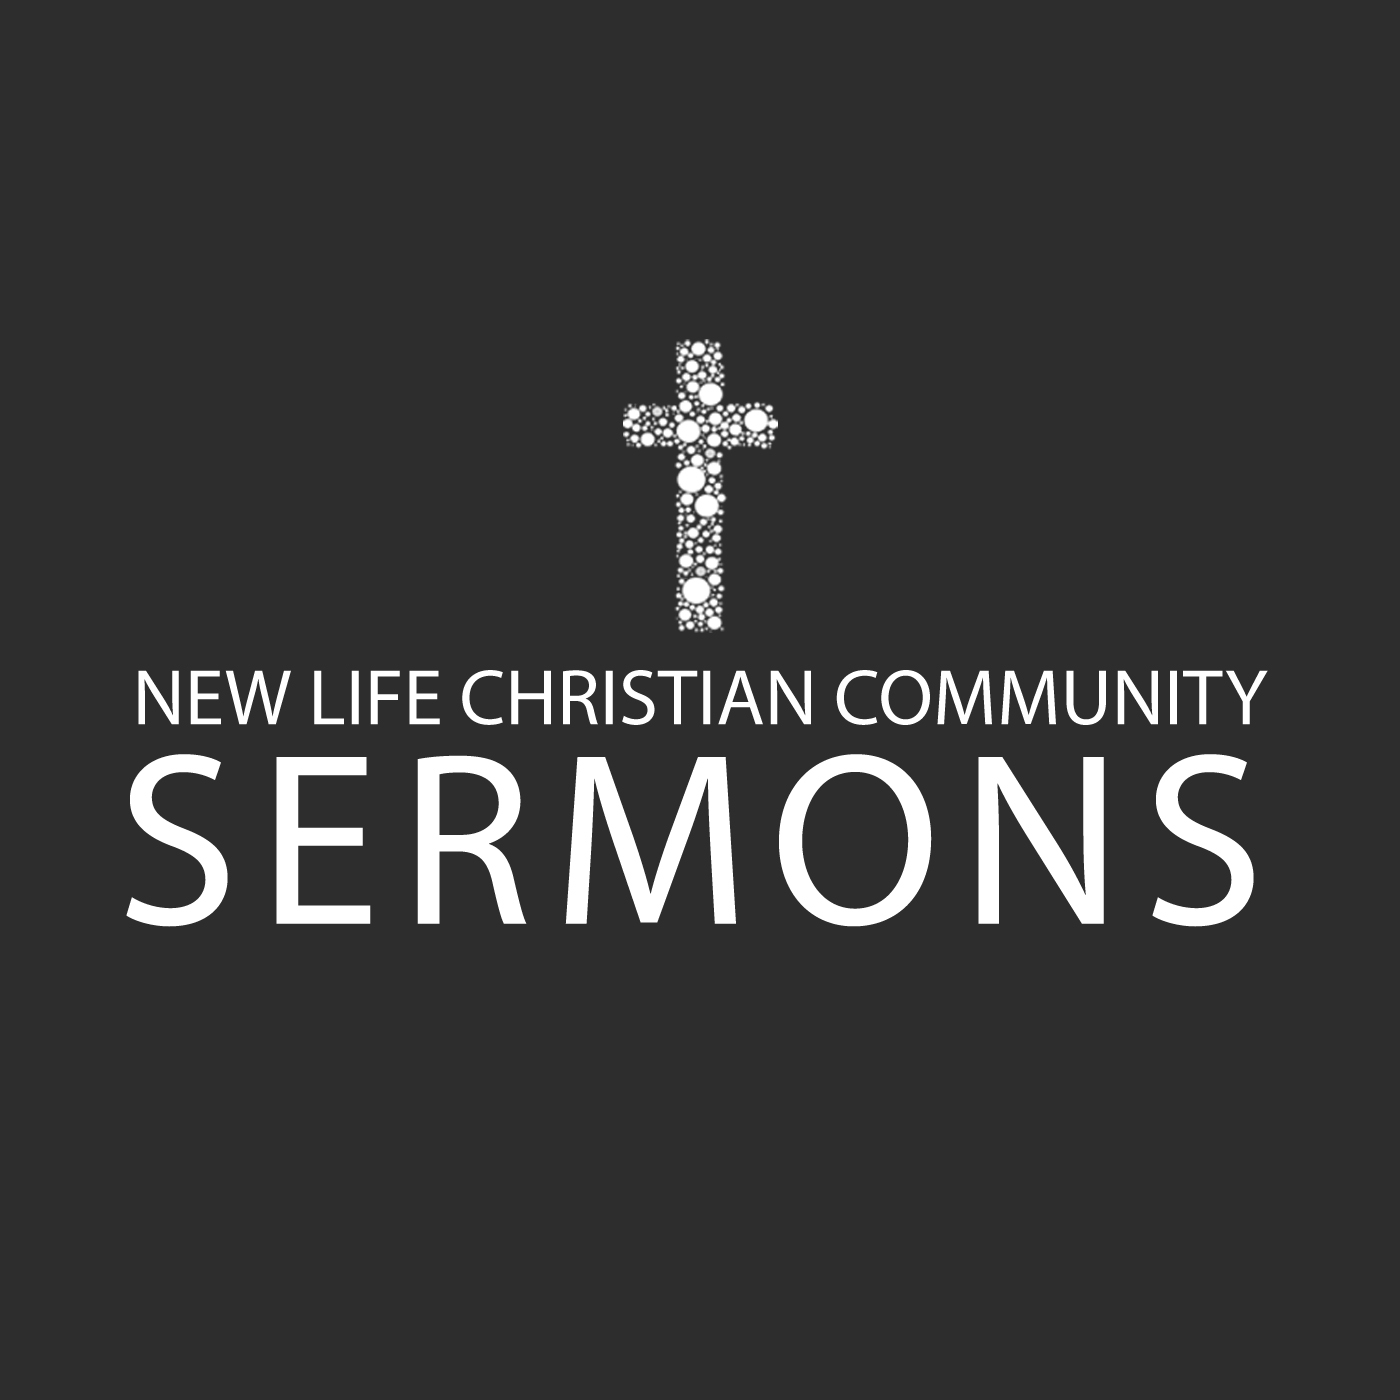 Sermons – New Life Christian Community